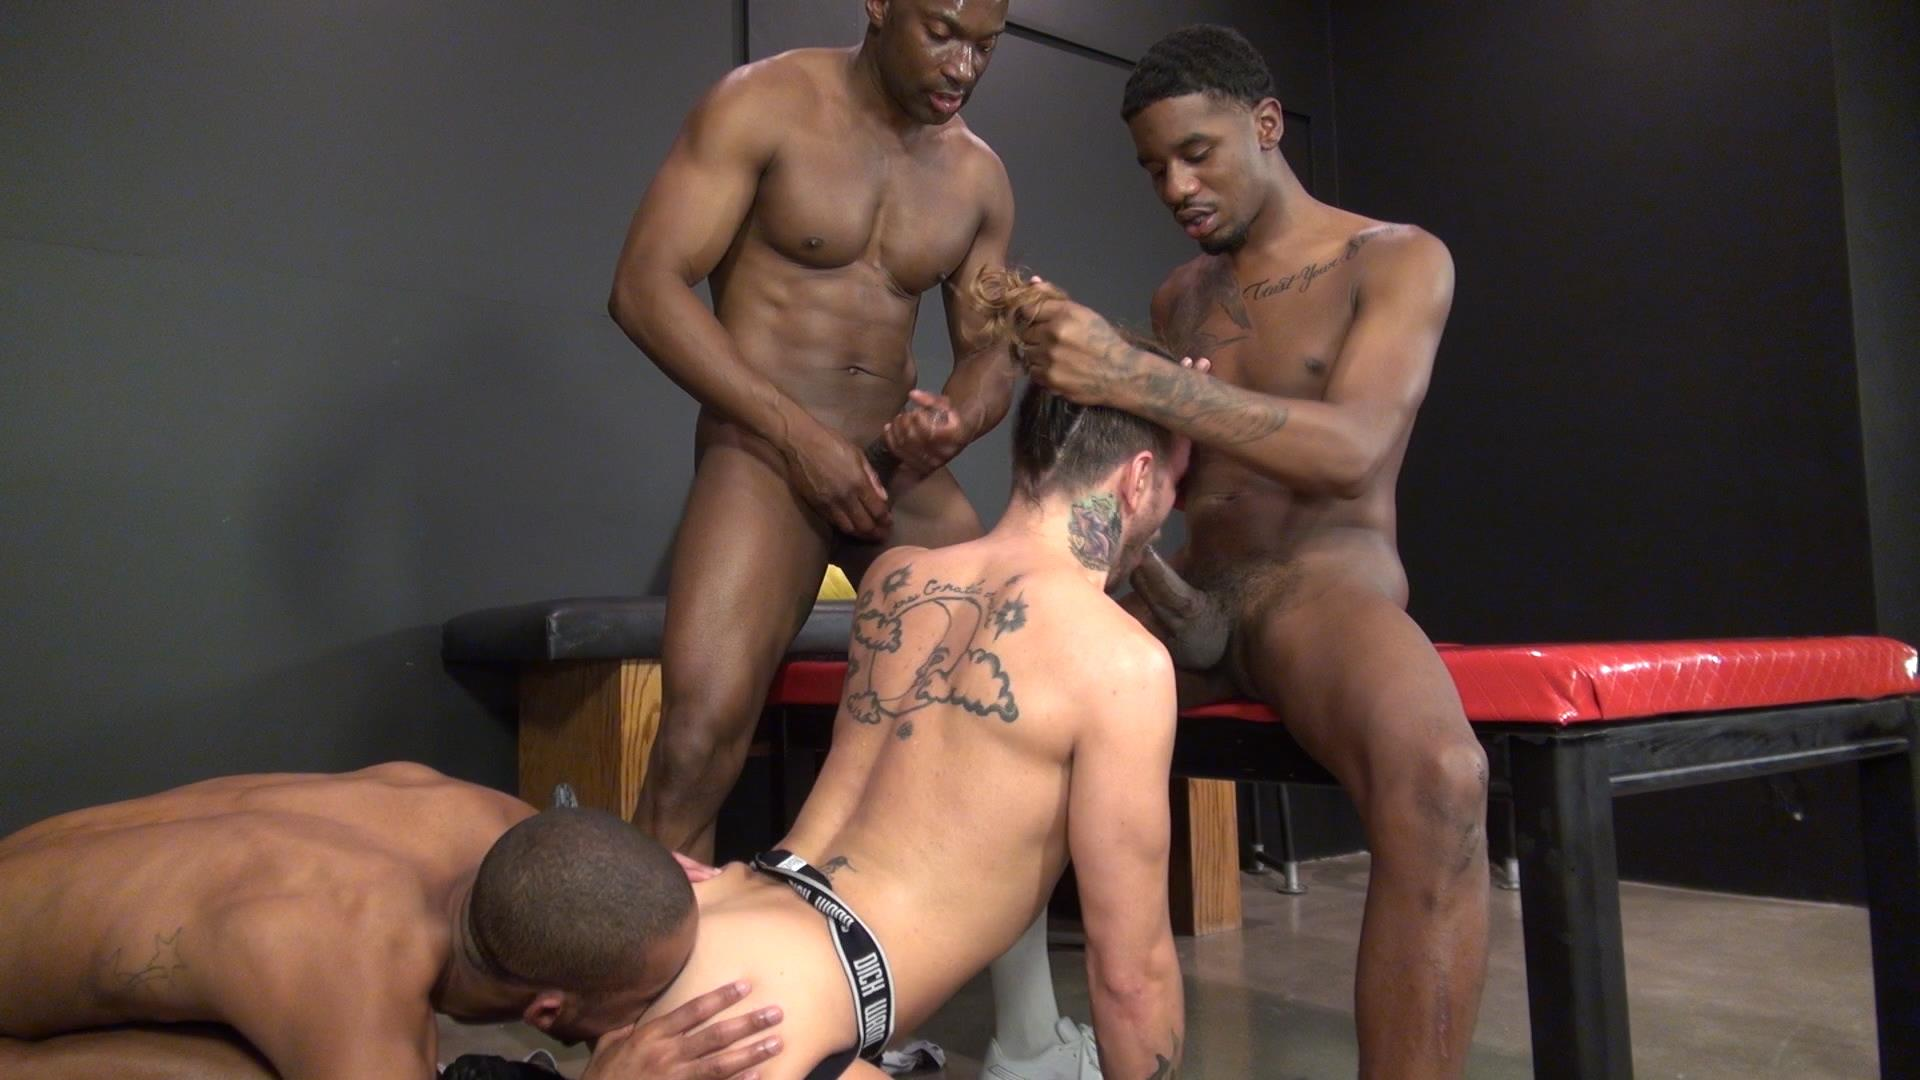 chris vin jim blair spank